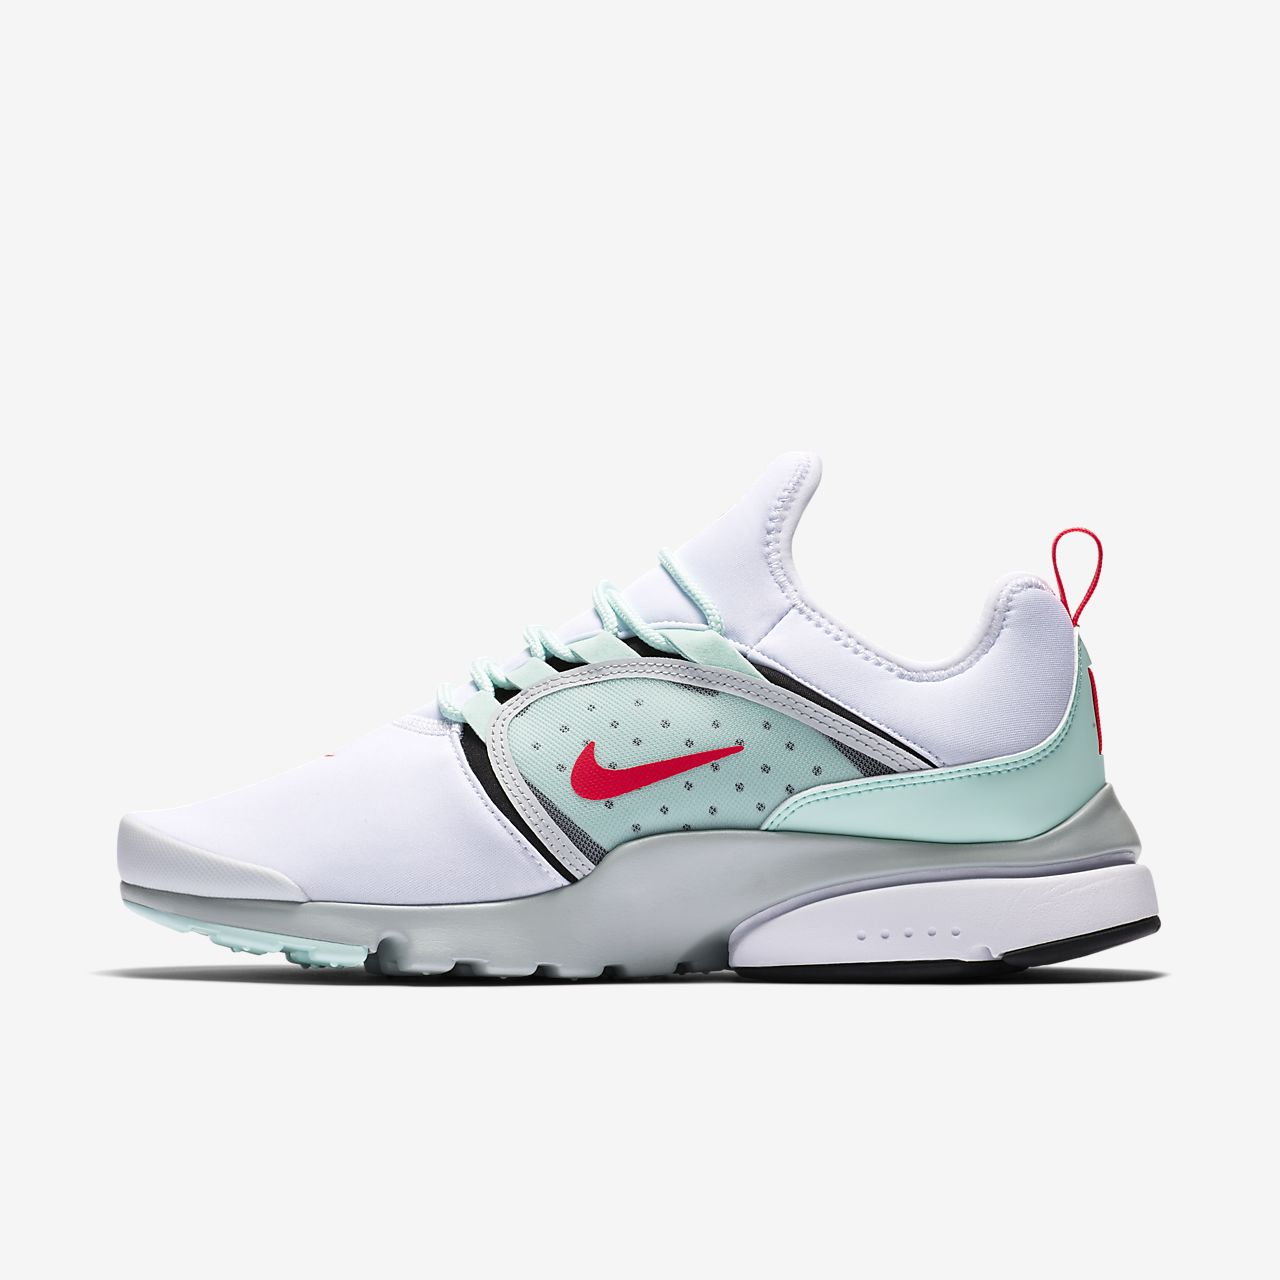 028d4435815a Nike Presto Fly World Men s Shoe. Nike.com AT